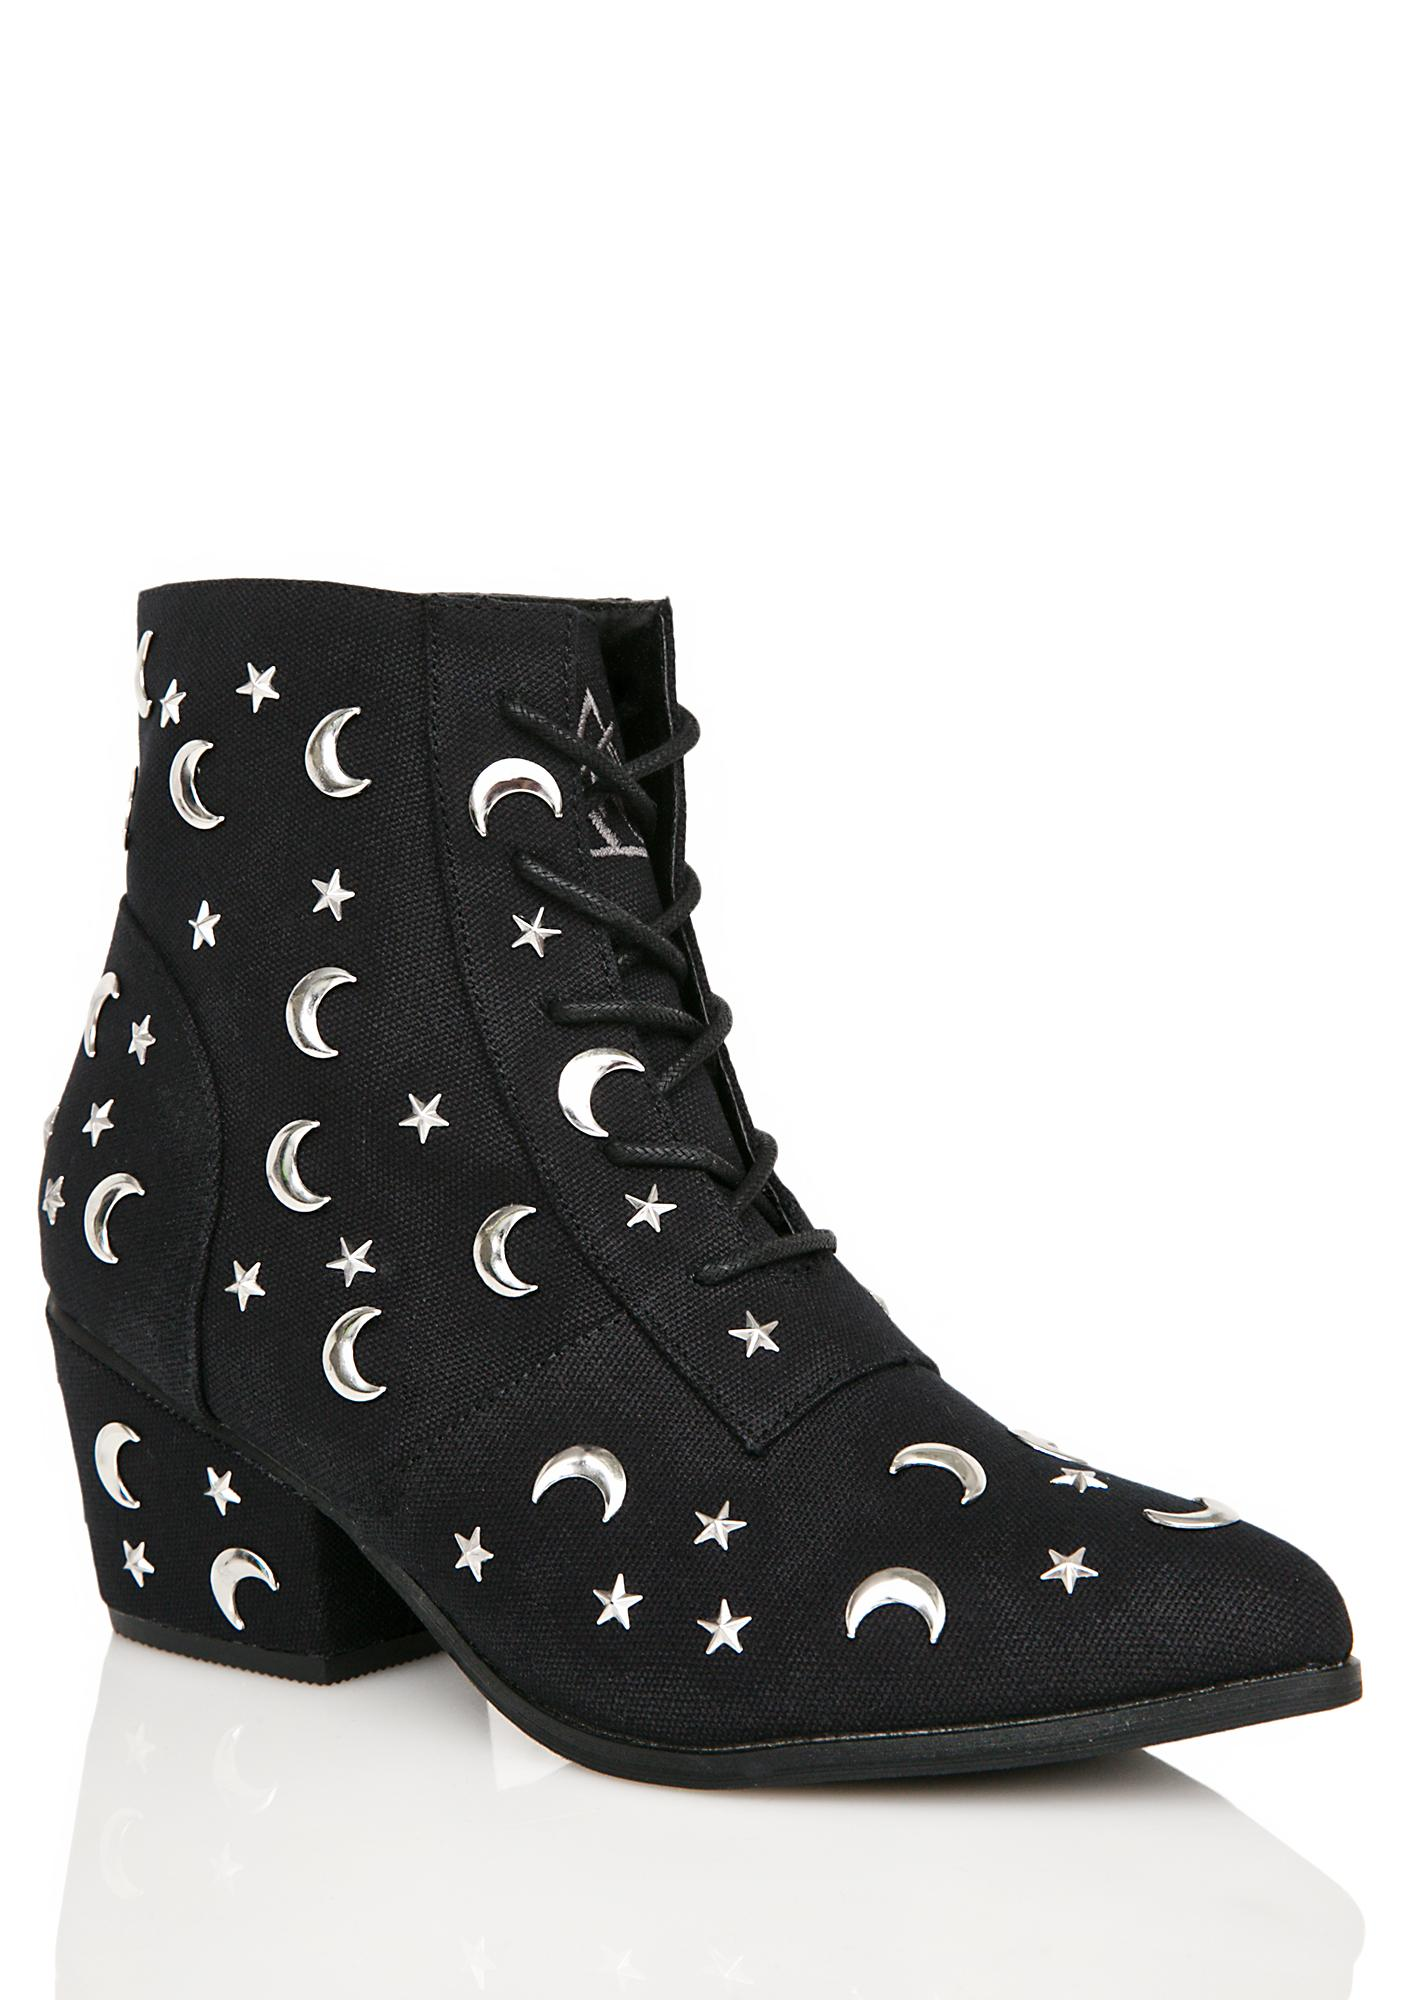 Y.R.U. Aura Qozmiq Stars And Moons Booties